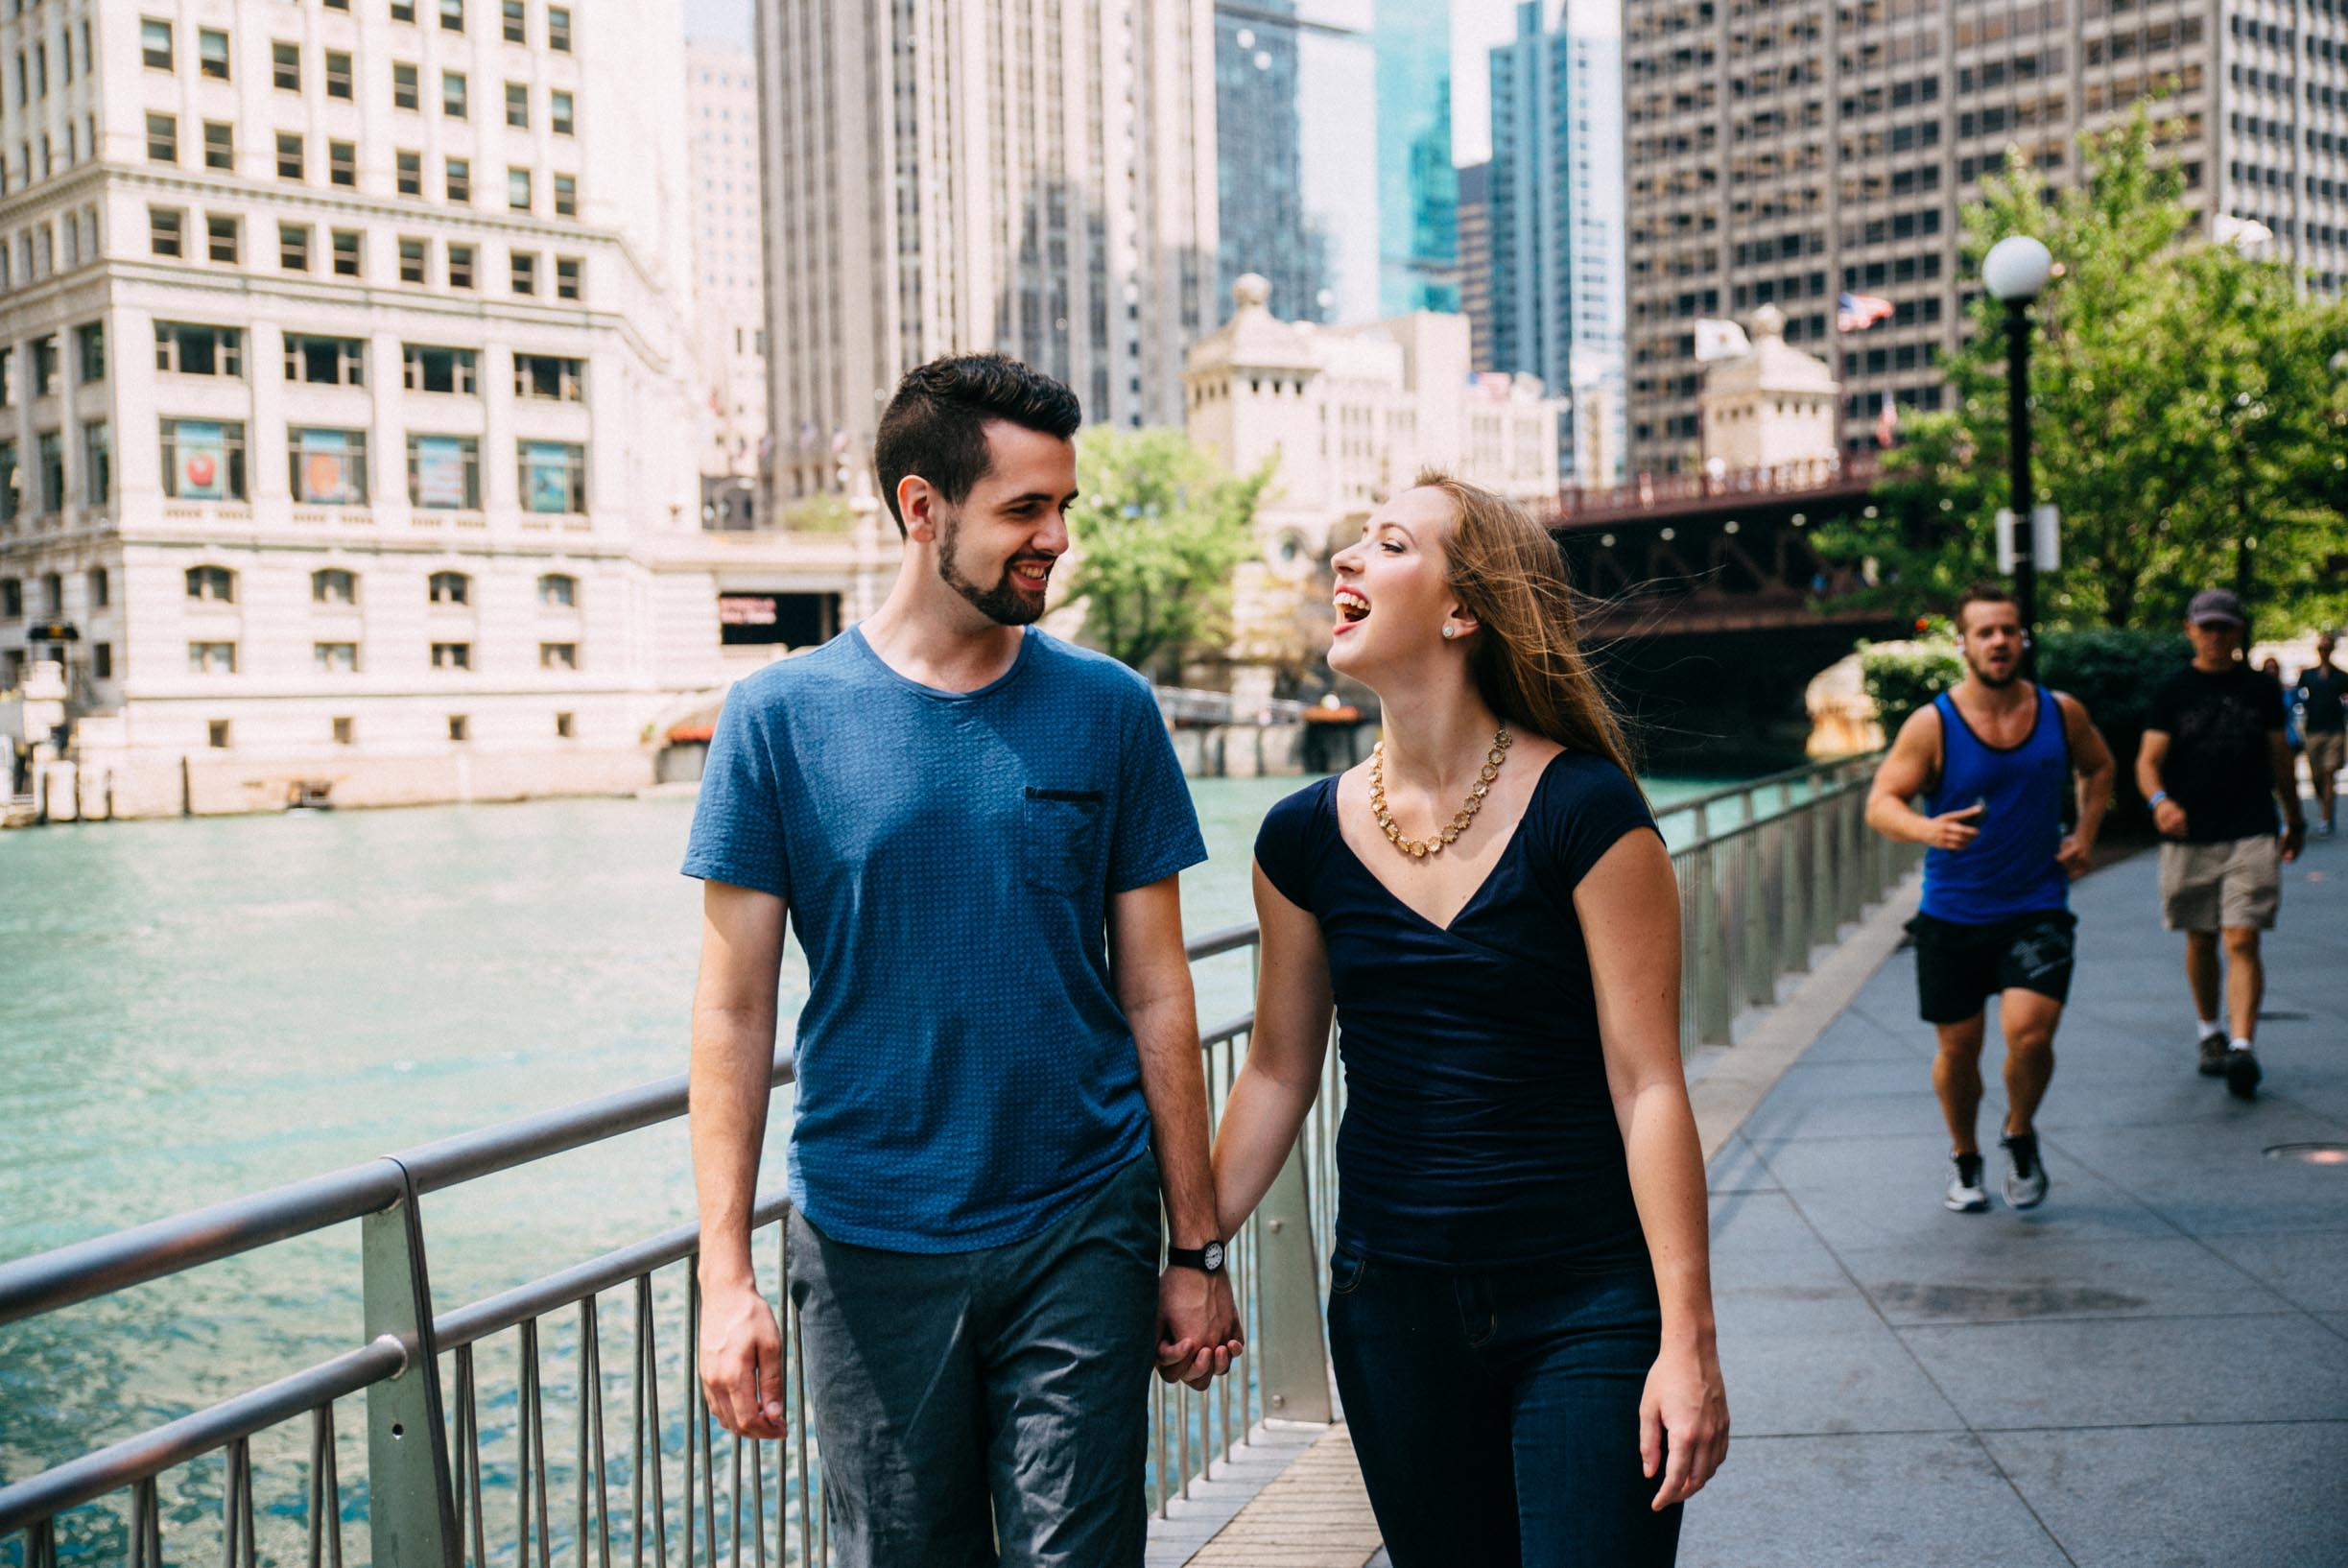 Ashley_Jacob_Chicago_Riverwalk_Couple_Portraits-2.jpg